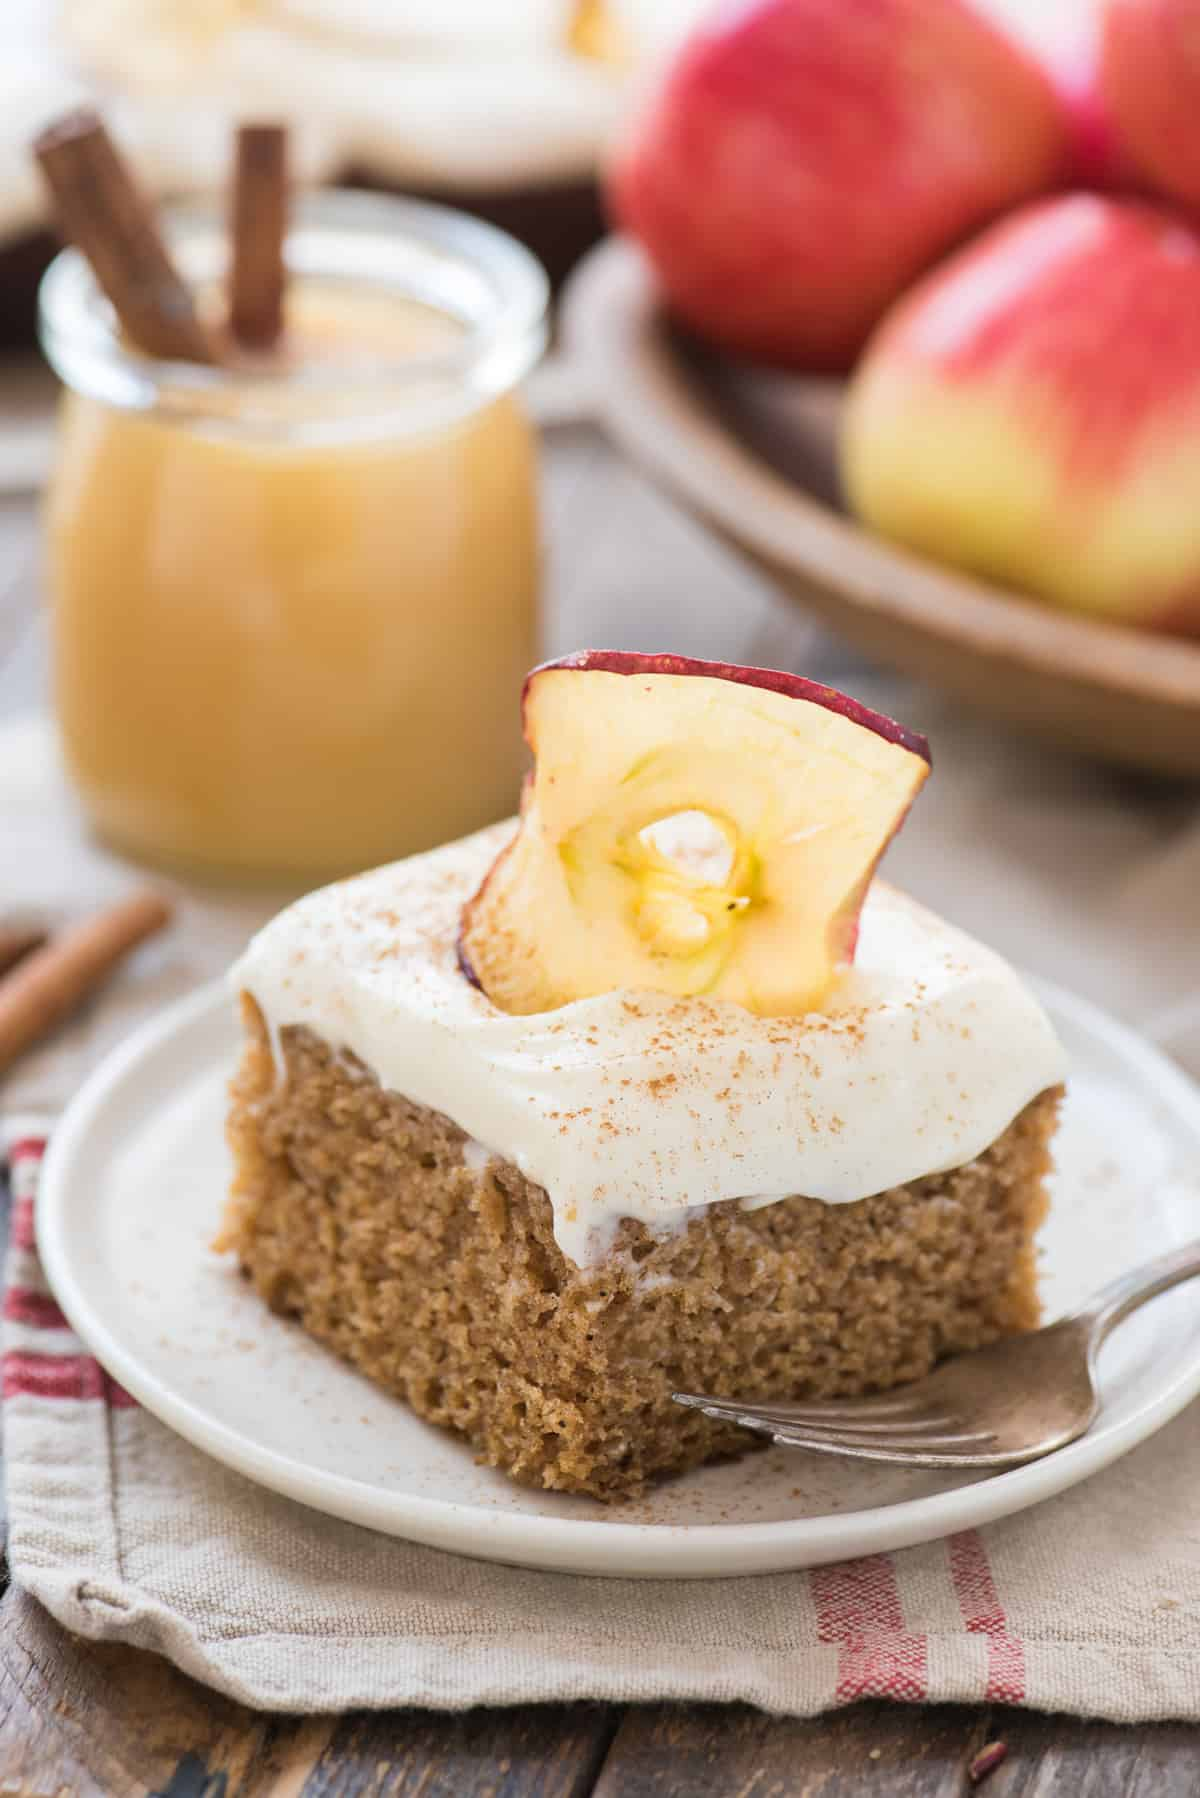 slice of applesauce cake with cream cheese frosting on white plate with apples in the background